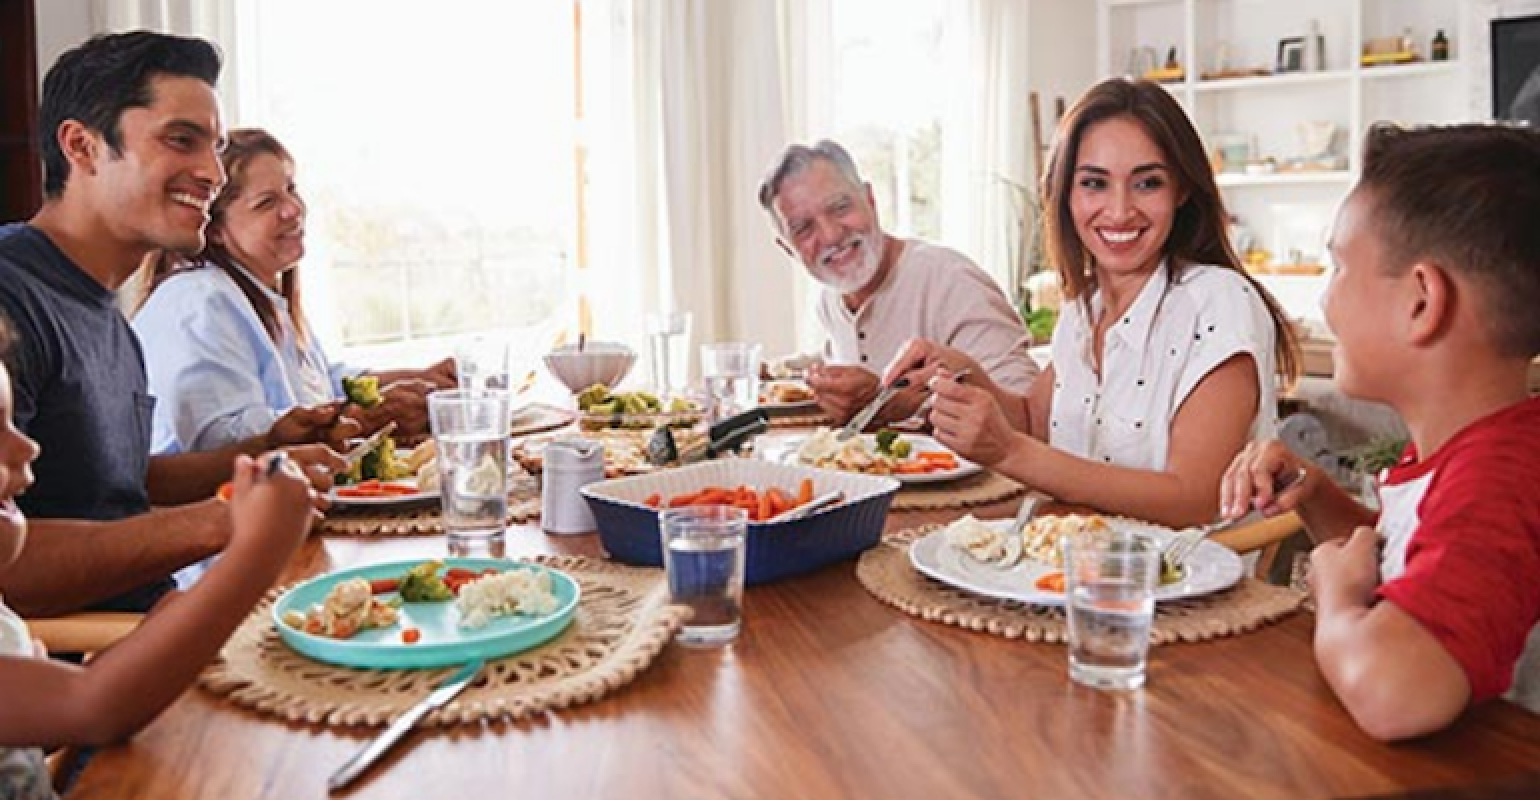 Family meals take on renewed value amid pandemic   Supermarket News